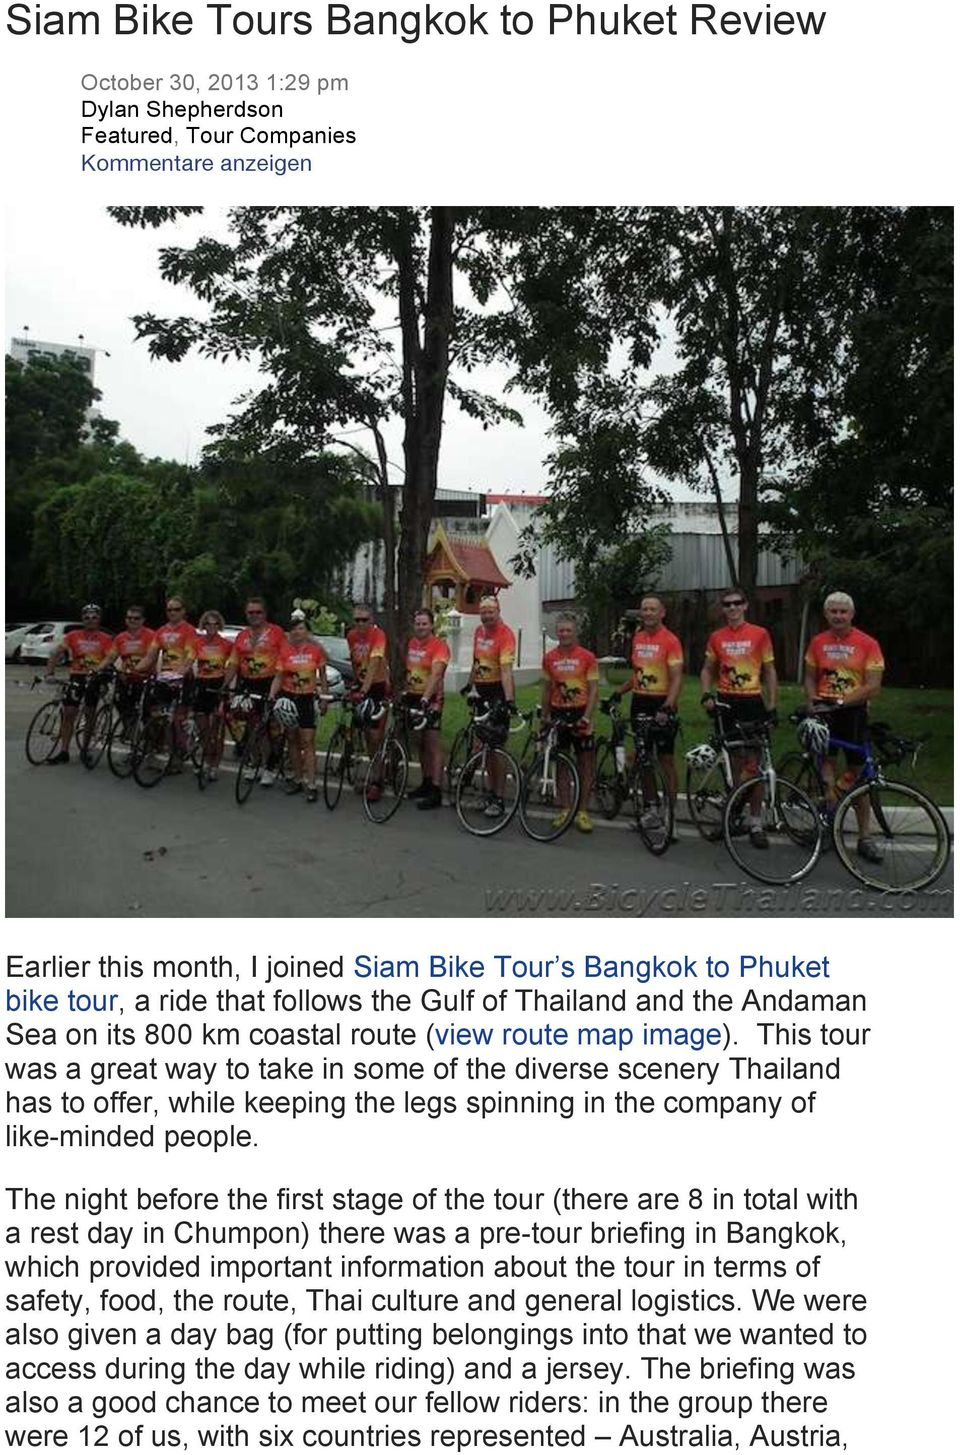 This tour was a great way to take in some of the diverse scenery Thailand has to offer, while keeping the legs spinning in the company of like-minded people.